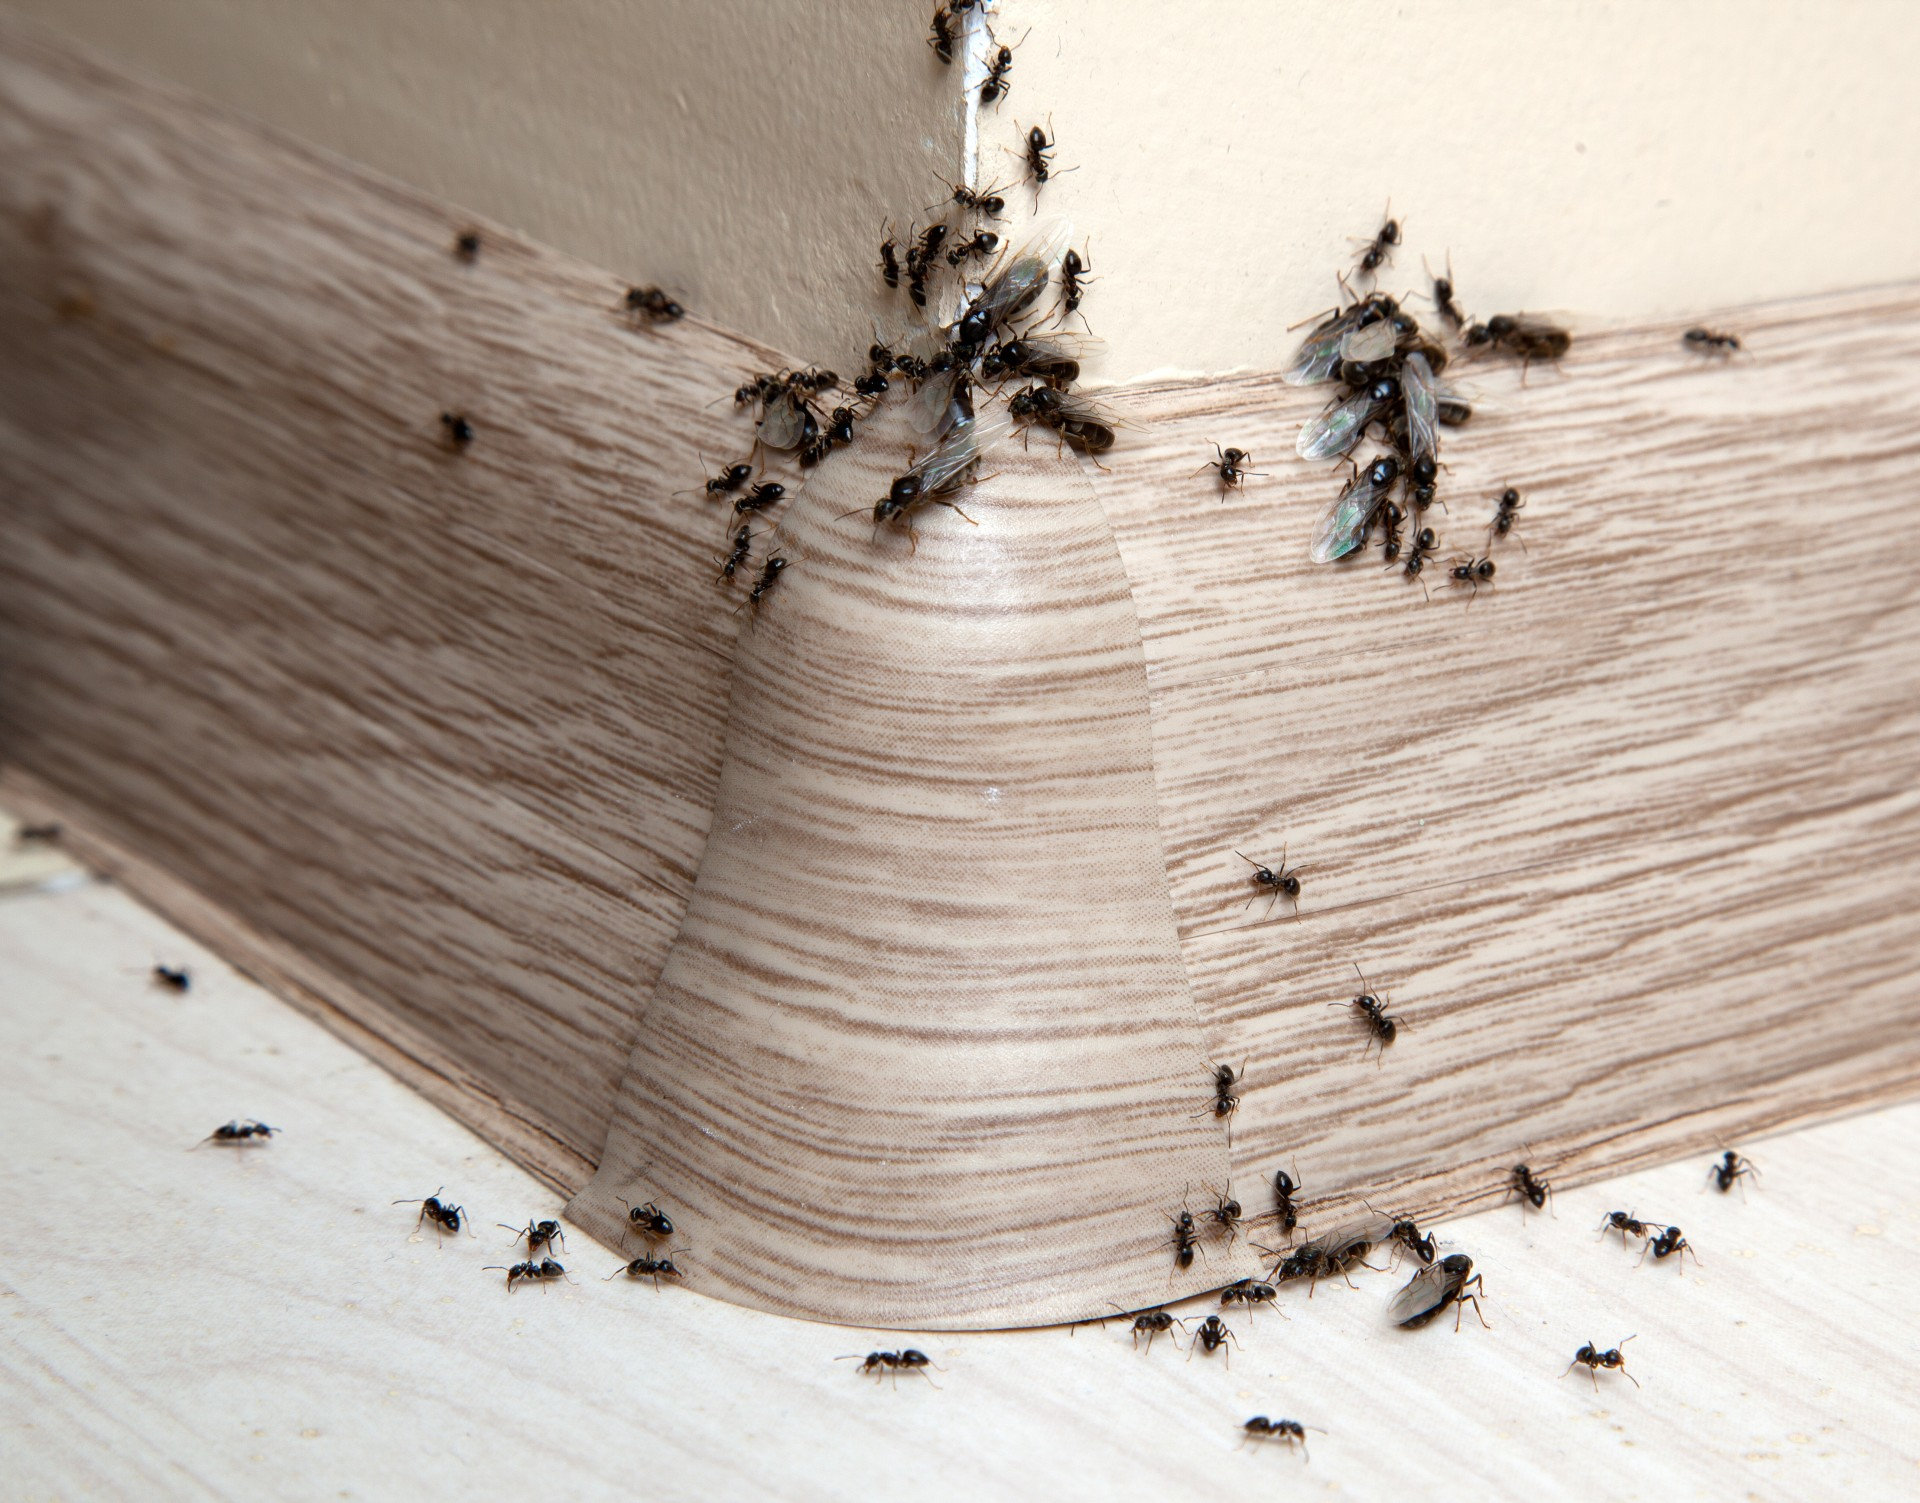 Ant Infestation, Pest Control in West Byfleet, Byfleet, KT14. Call Now 020 8166 9746